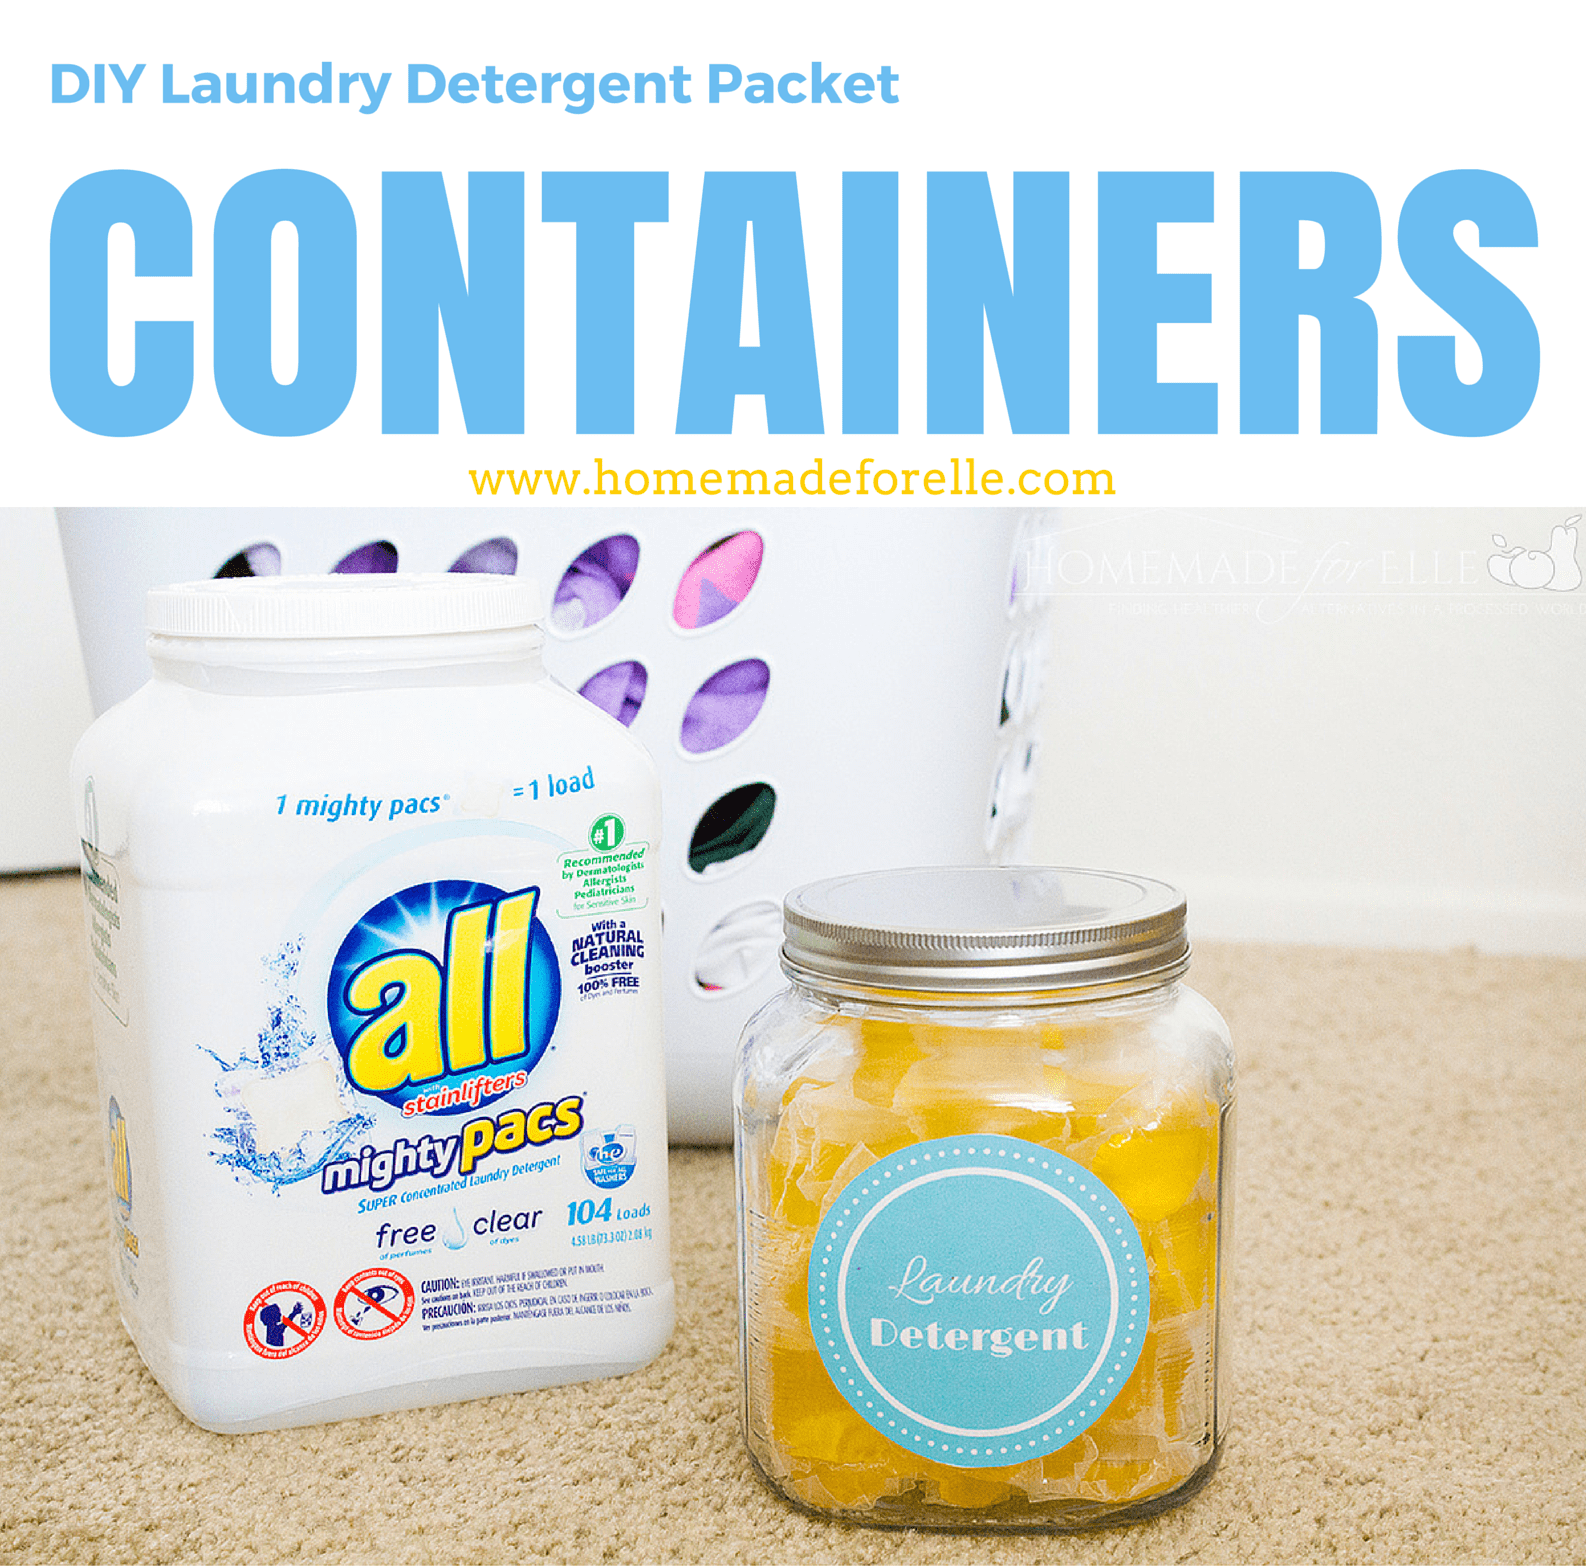 DIY Laundry Detergent Packet Containers